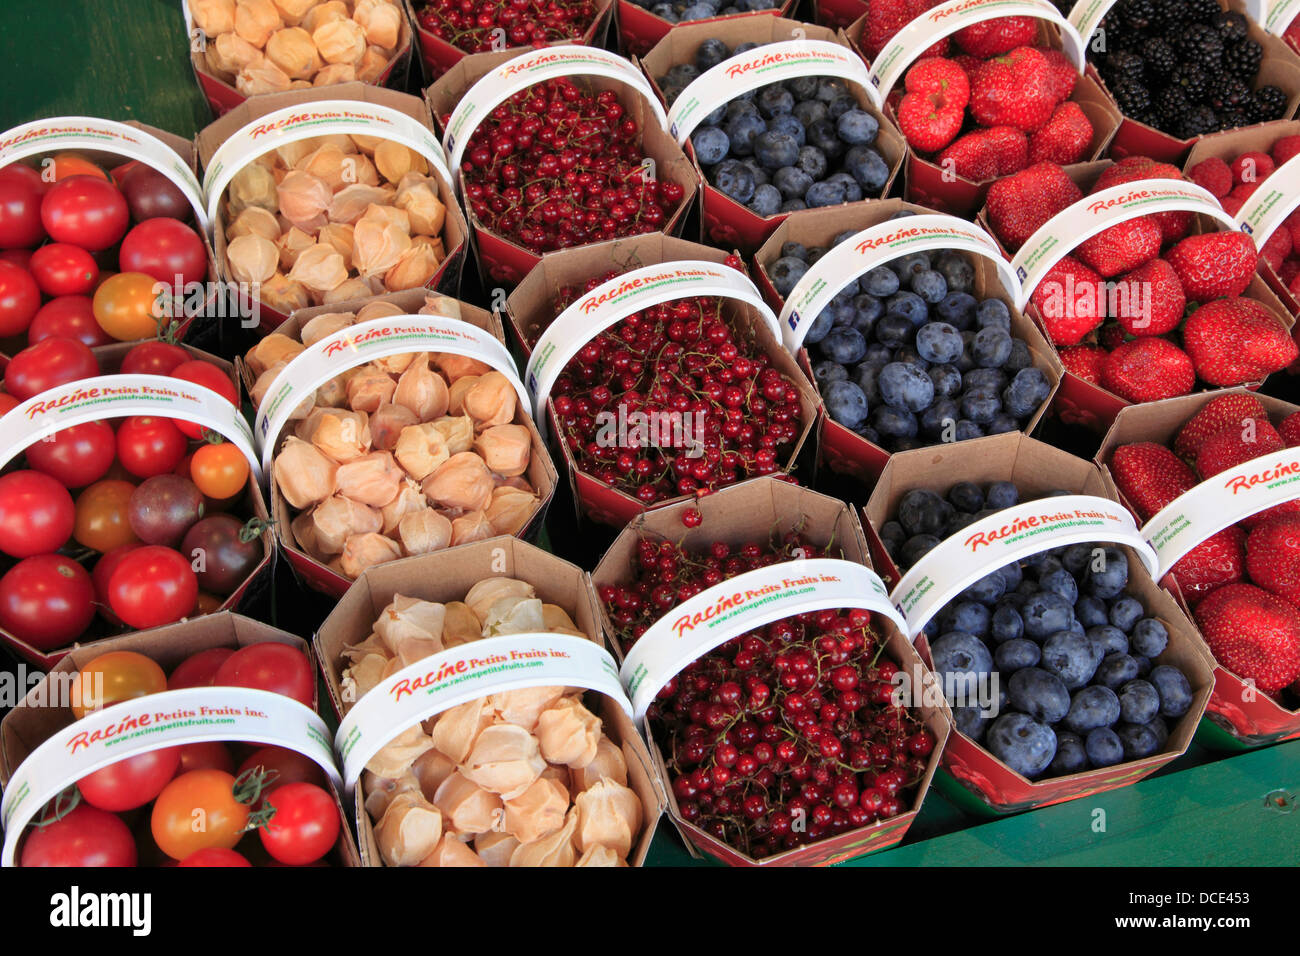 Fruits display jean talon market montreal quebec for Meubles montreal jean talon